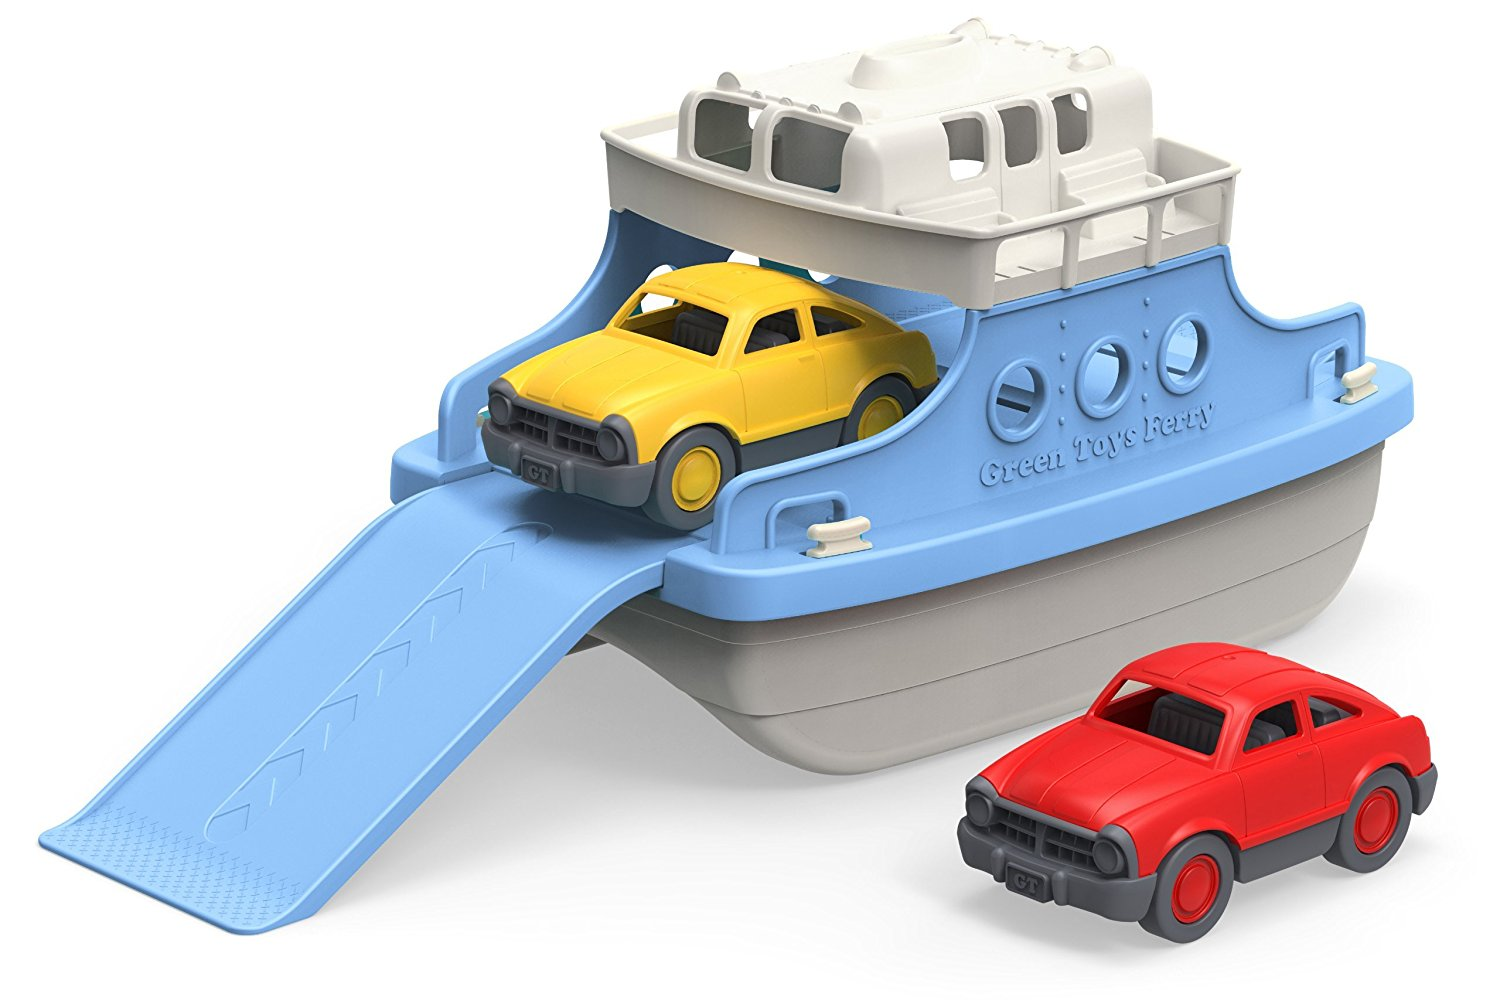 Green Toys Ferry Boat: Sale $12.45, Regular $24.99